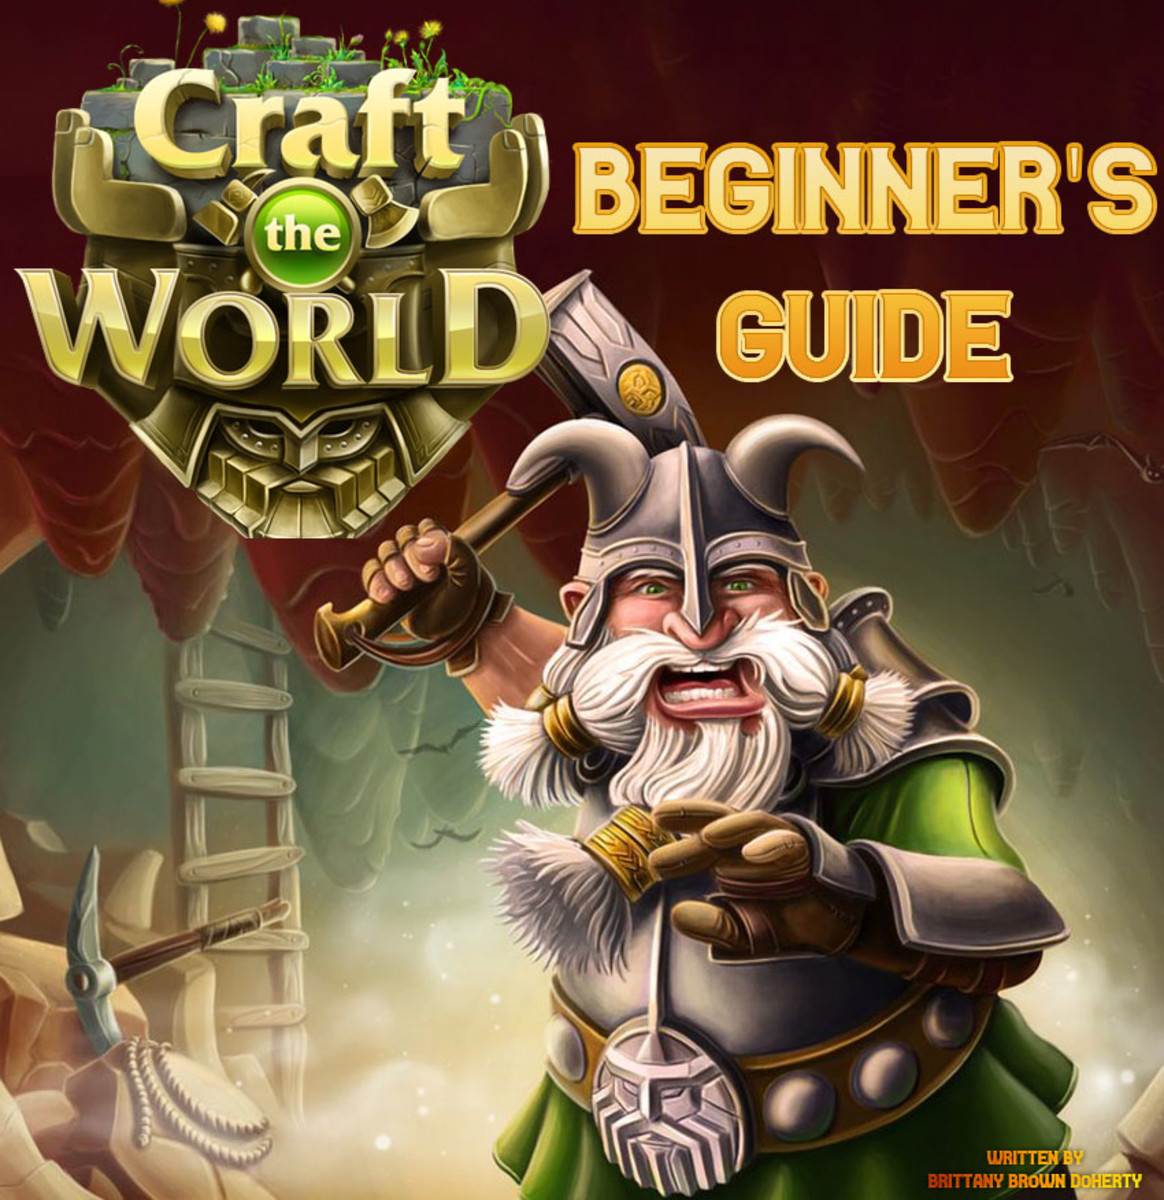 Craft the World Beginner's Guide: How to Build a Shelter, Use Magic Spells, and Other Helpful Tips!